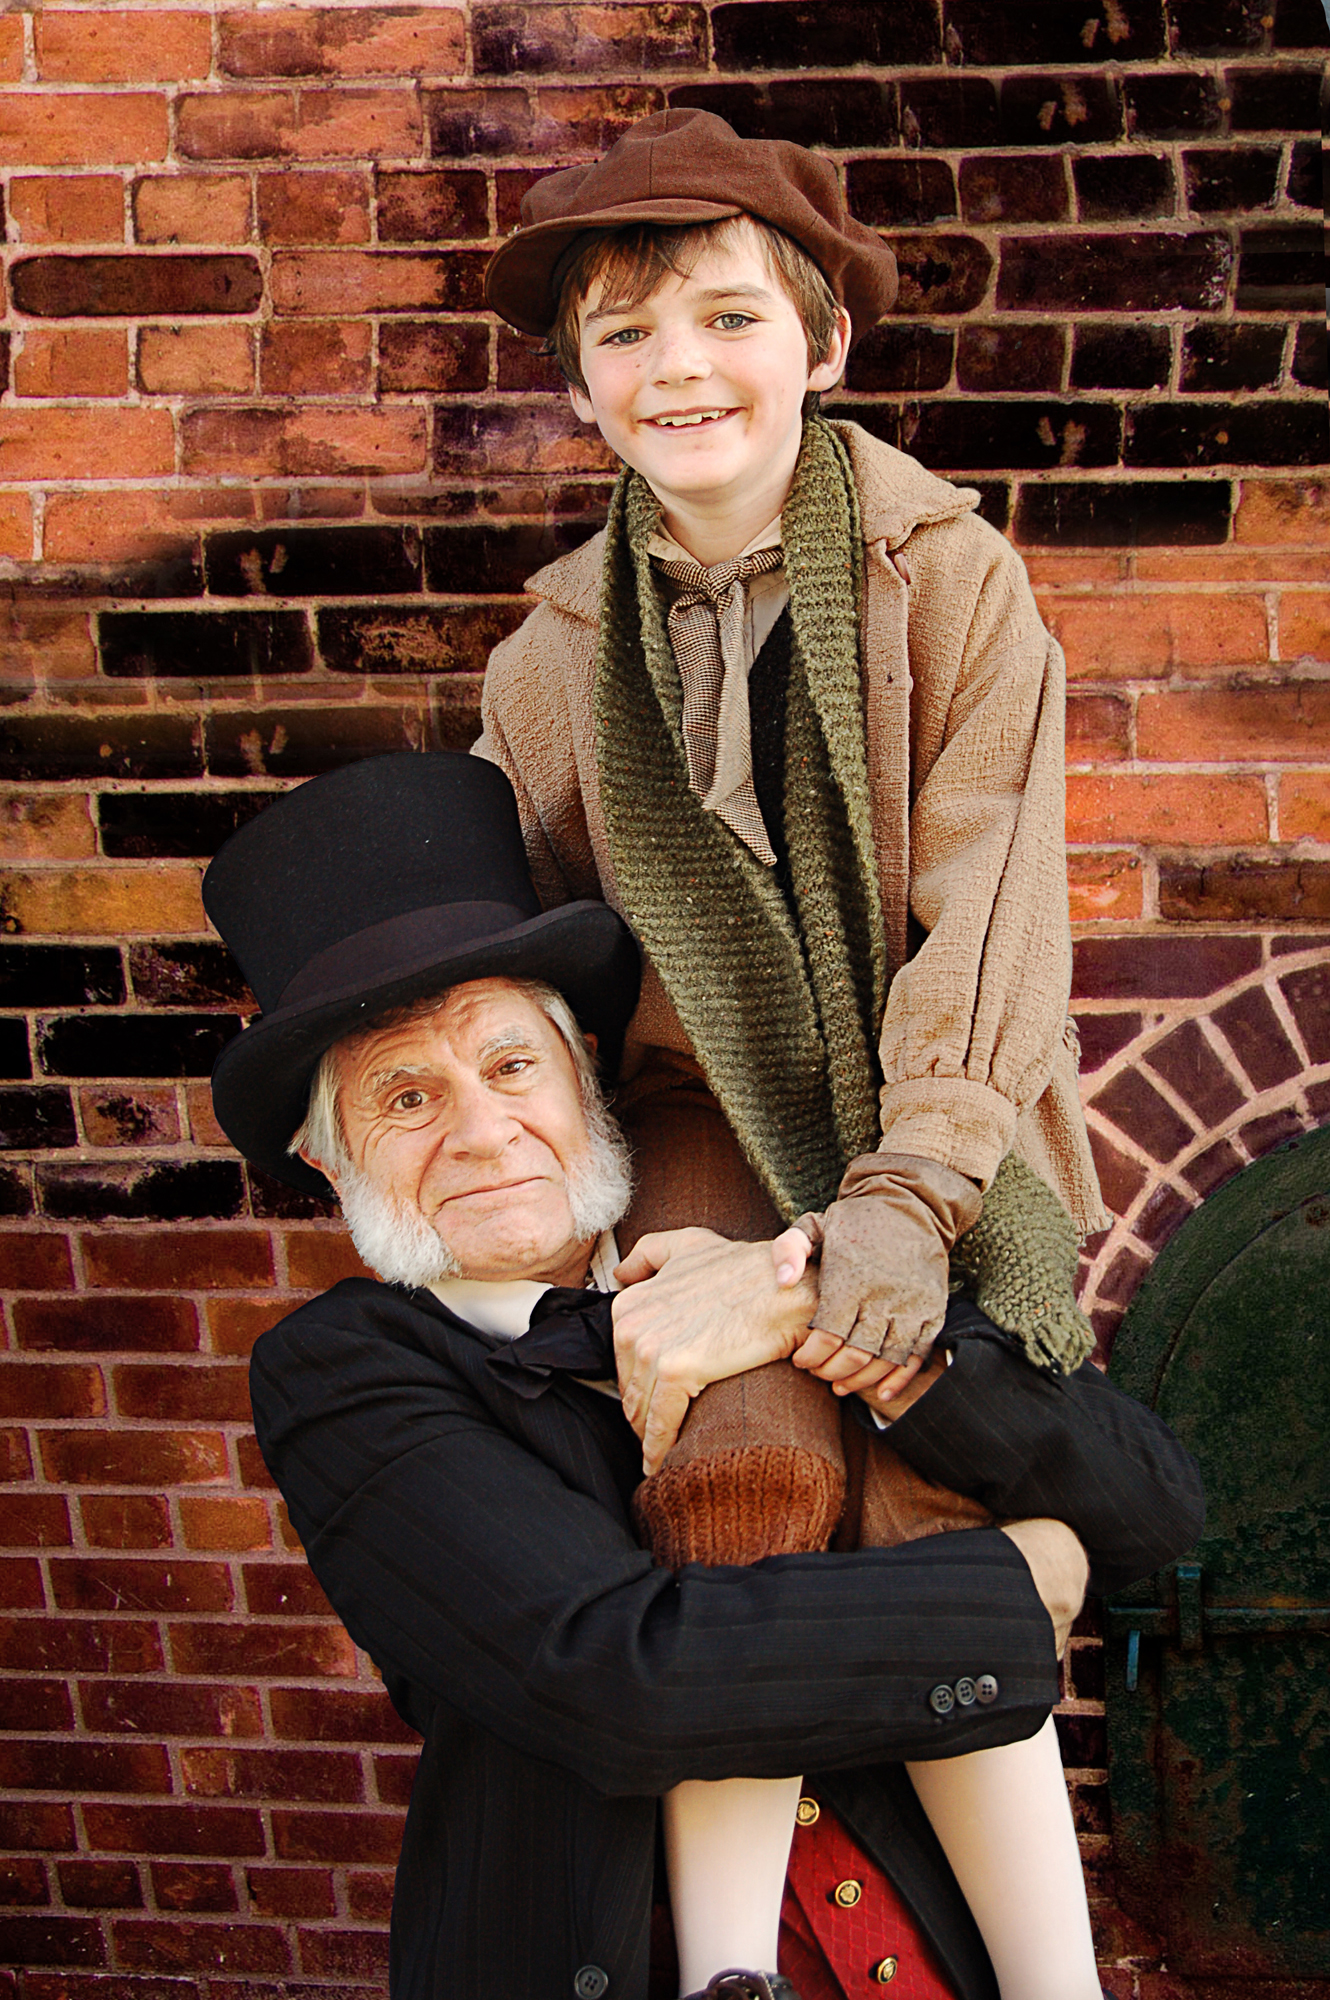 (l to r): Richard Farrell as Scrooge and Everett Meckler as Tiny Tim in San Jose Rep's A Christmas Carol.